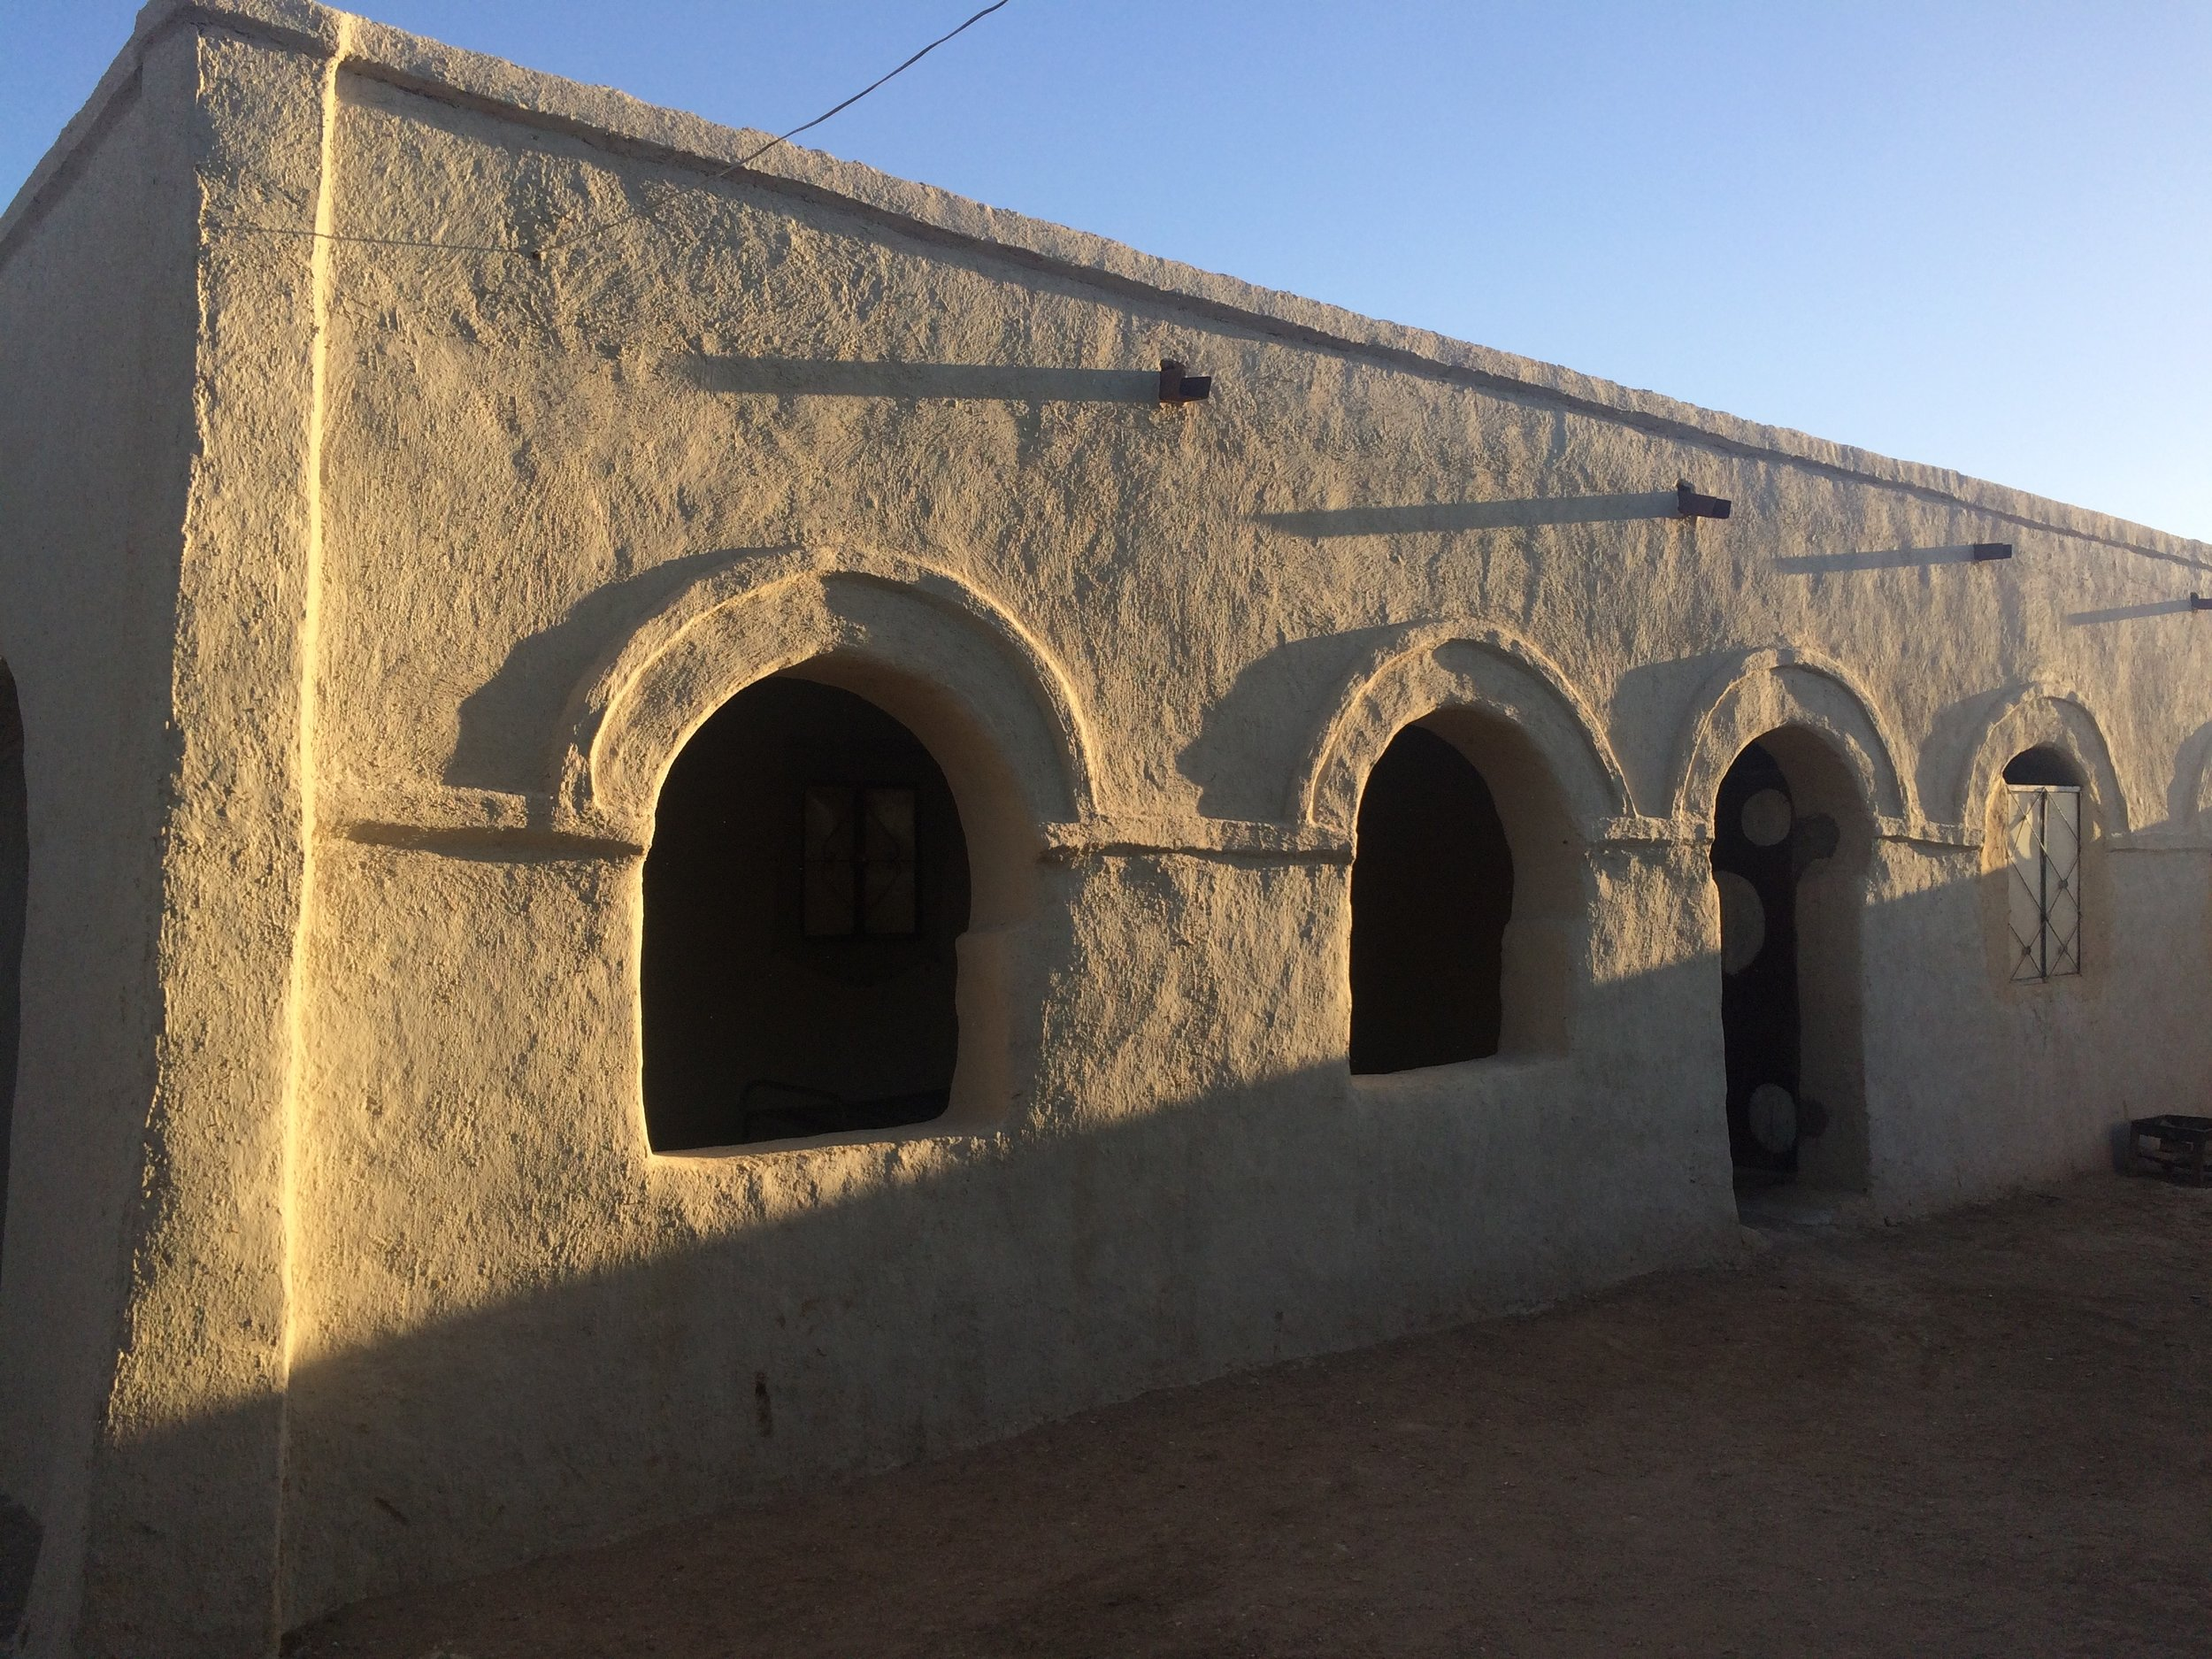 Soleb Guesthouse courtyard - looks nice doesn't it?